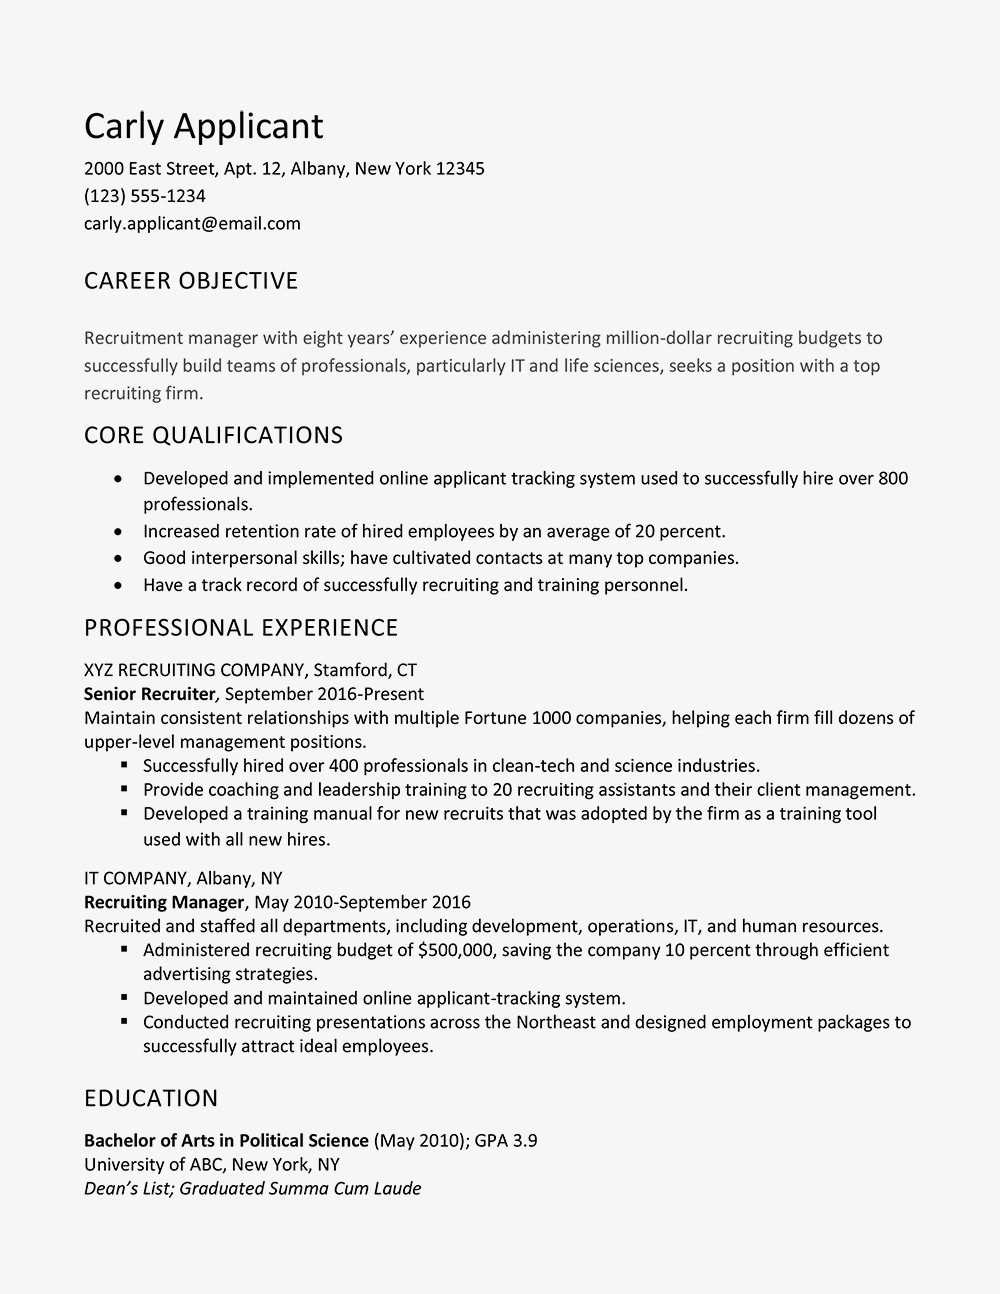 Applicant Tracking System Resume - Sample Cover Letter and Resume for A Recruiter